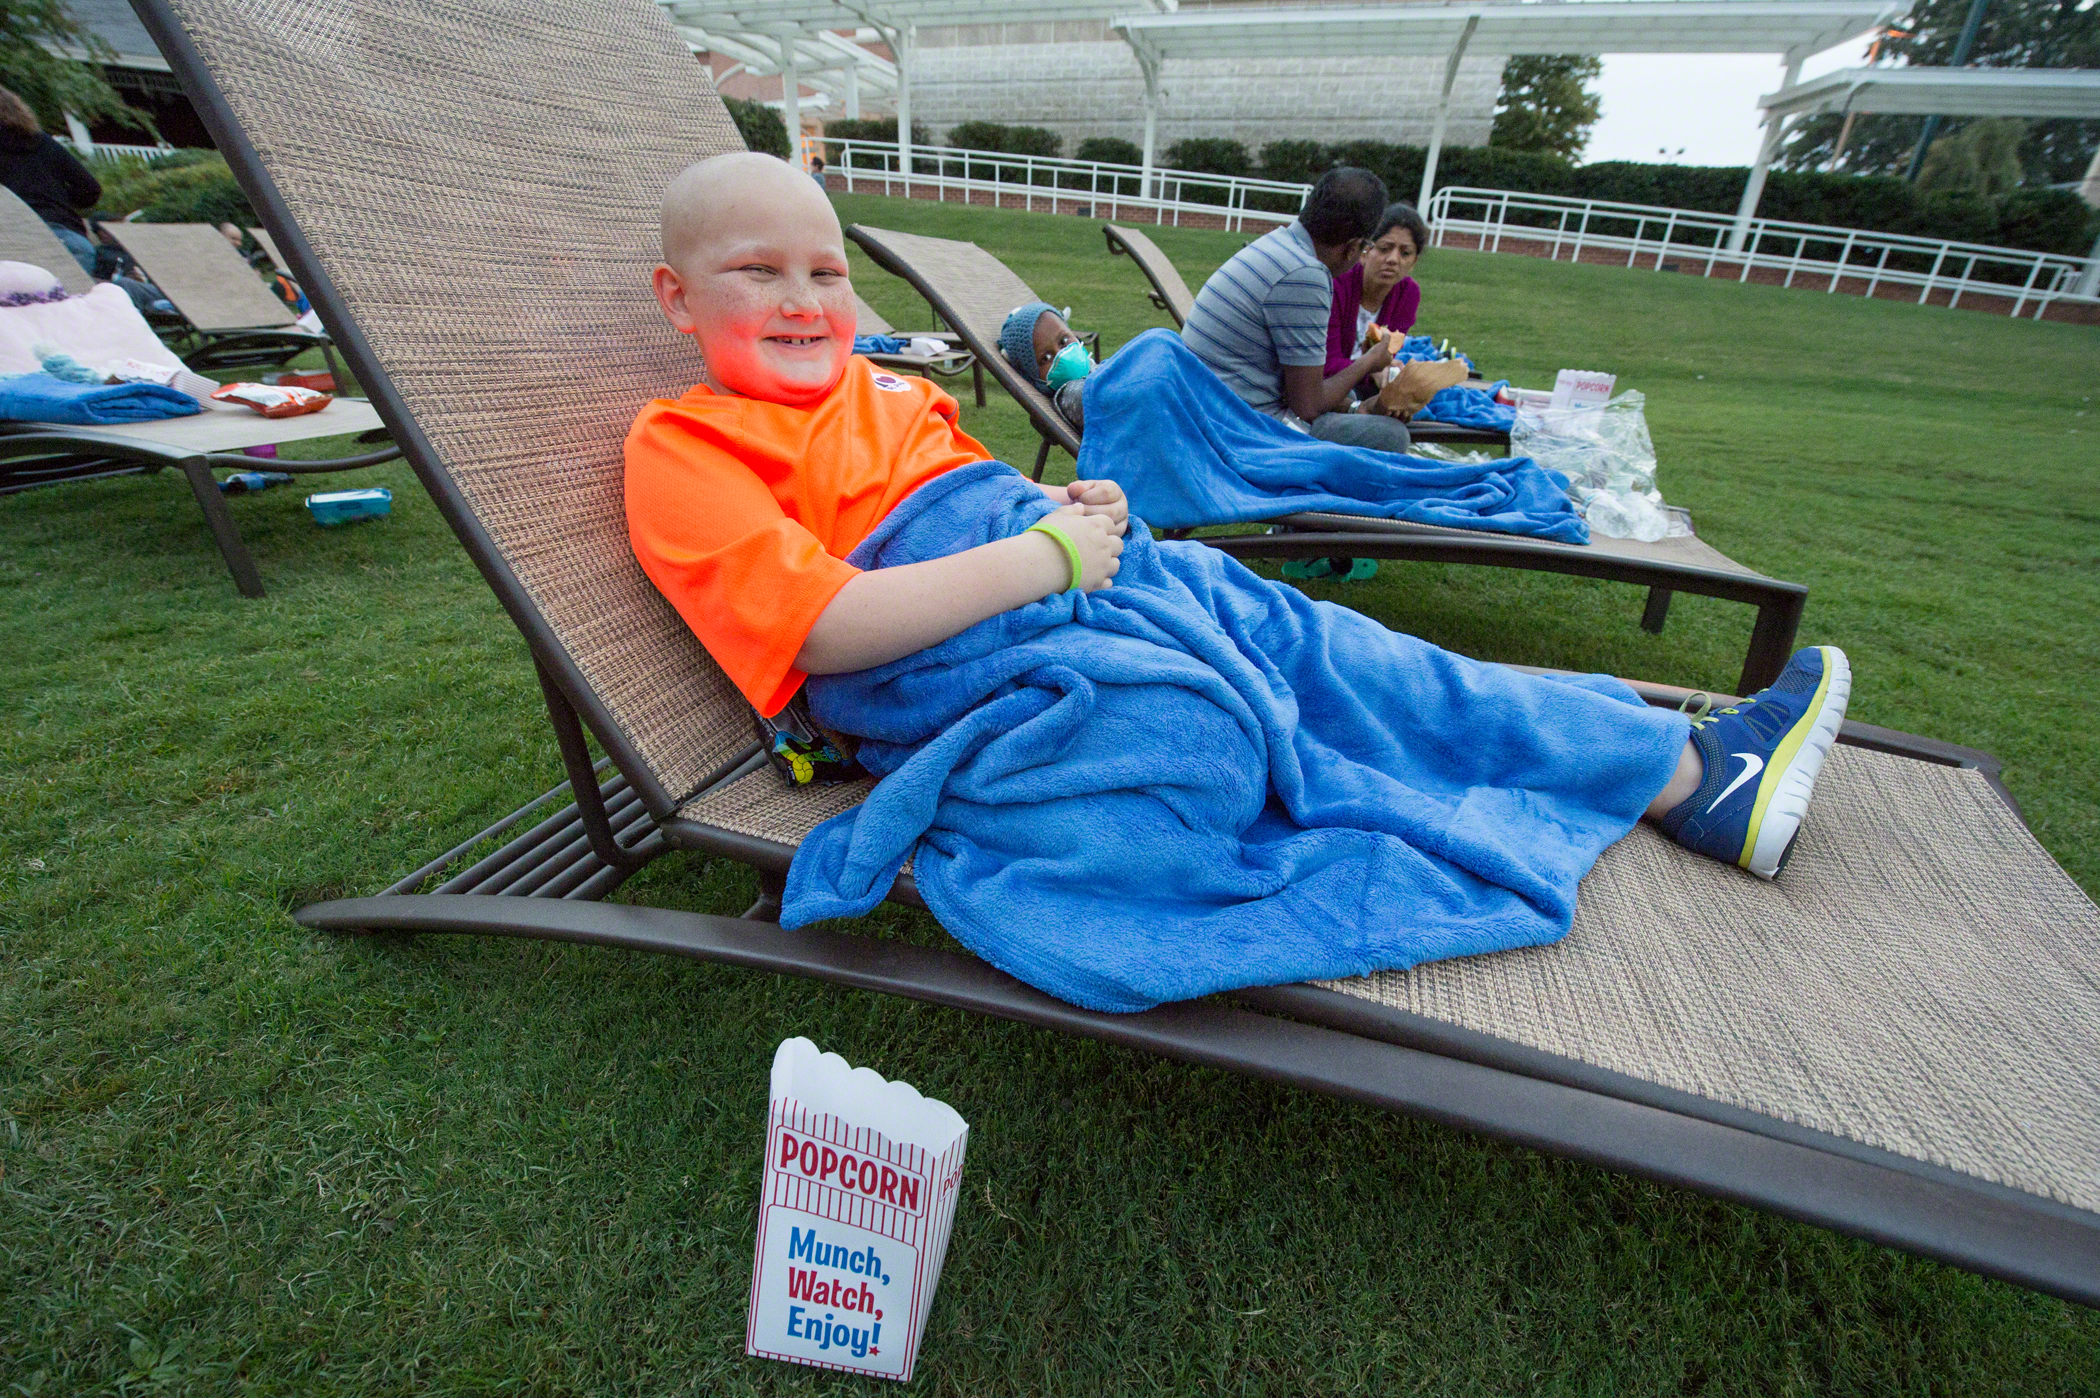 Kids of St. Jude Children's Research Hospital Enjoy Night of Fun with Dive-In Movies Presented by Carnival Cruise Lines